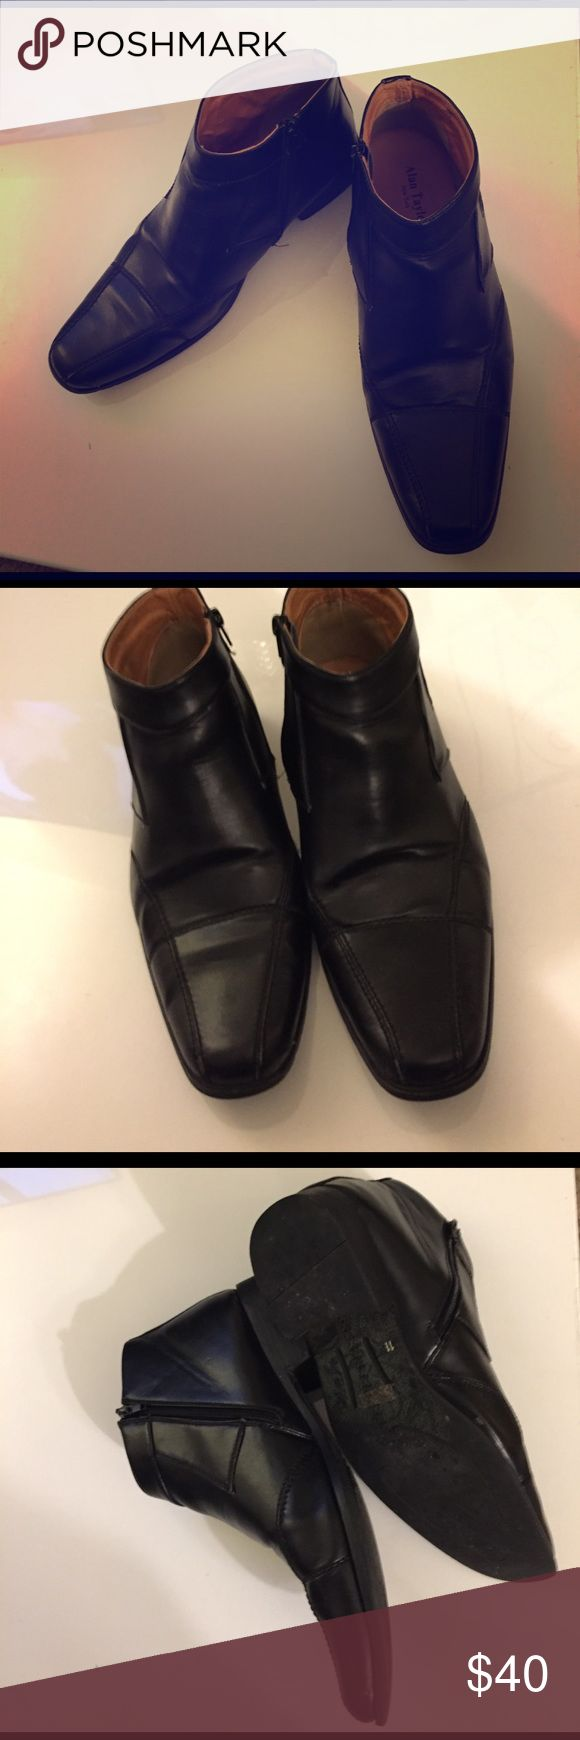 Men's Black Business Shoe I'm not sure if these are real leather or not. I imagine be they are. I looked online and didn't get any info- brand is Alan Taylor New York style Alfonso size 11 - believe they are a line by Lord & Taylor Alan Taylor Shoes Loafers & Slip-Ons